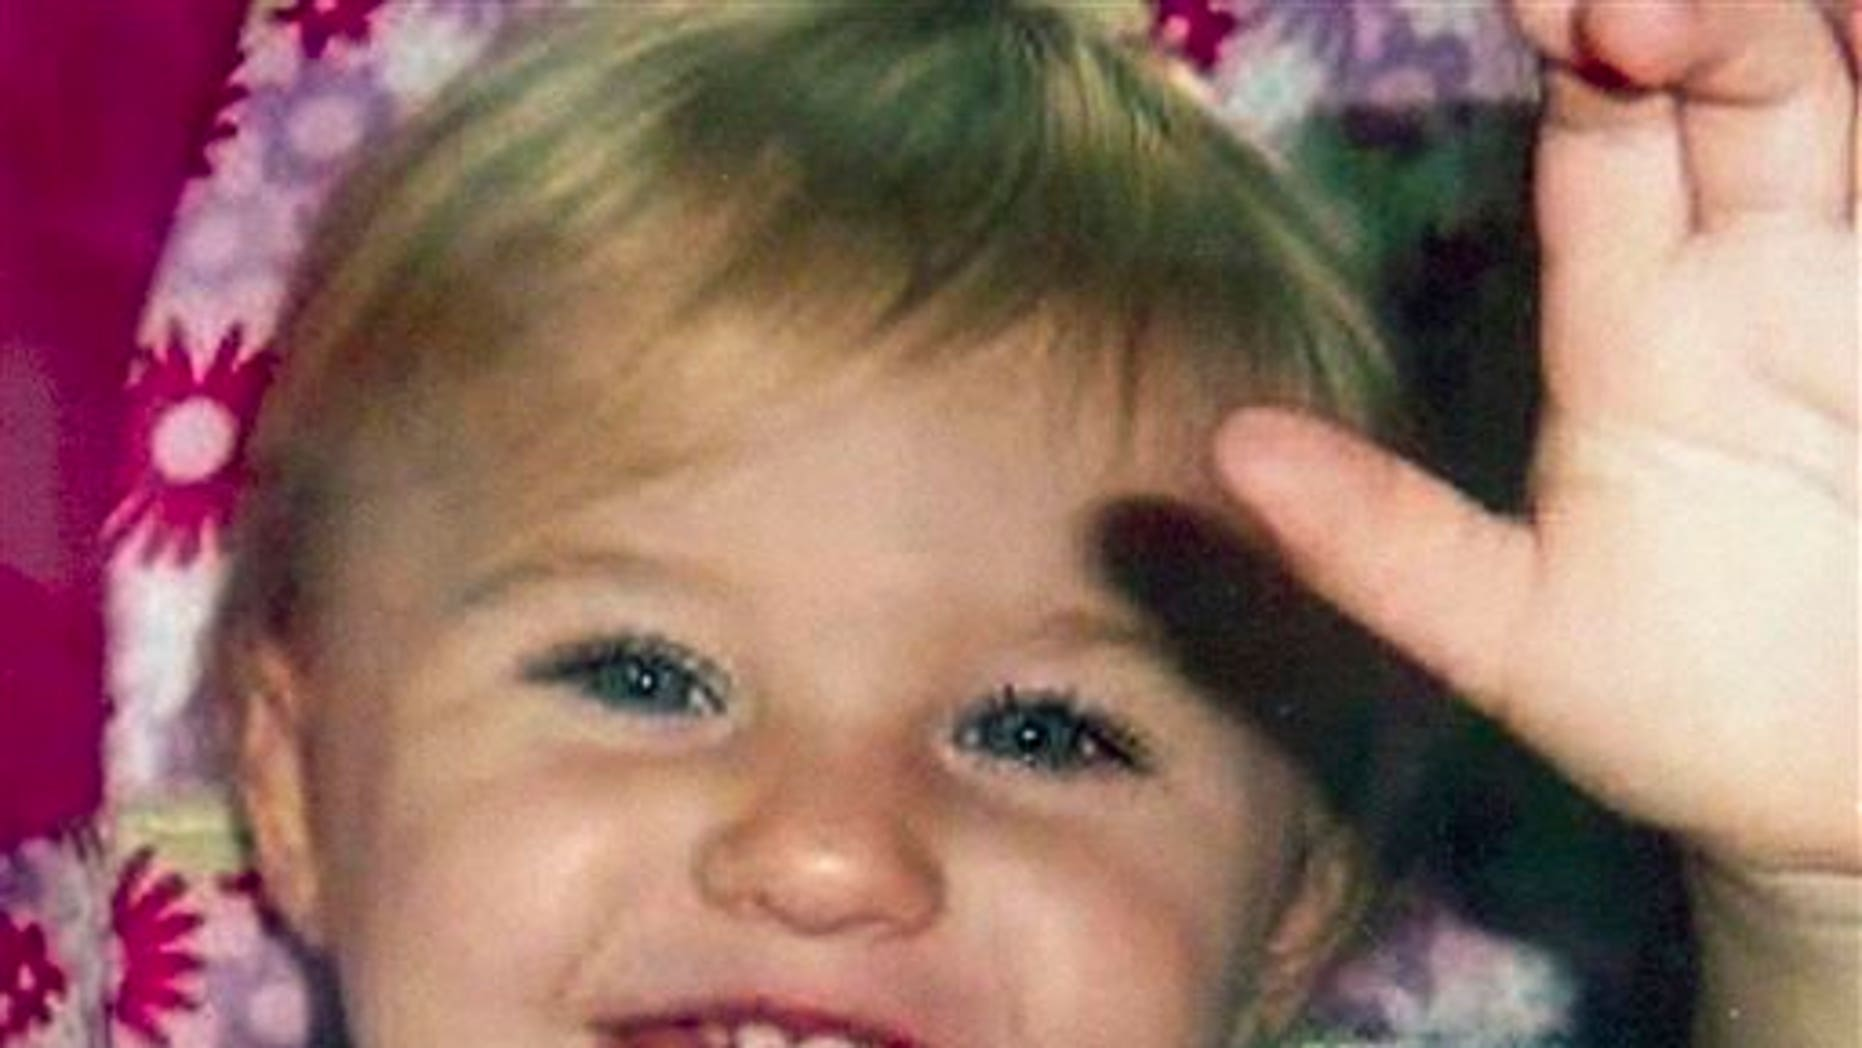 This undated file photo provided by Trista Reynolds shows Ayla Reynolds, her 2-year-old daughter, who went missing in December 2011 from her father's home in Waterville, Maine.